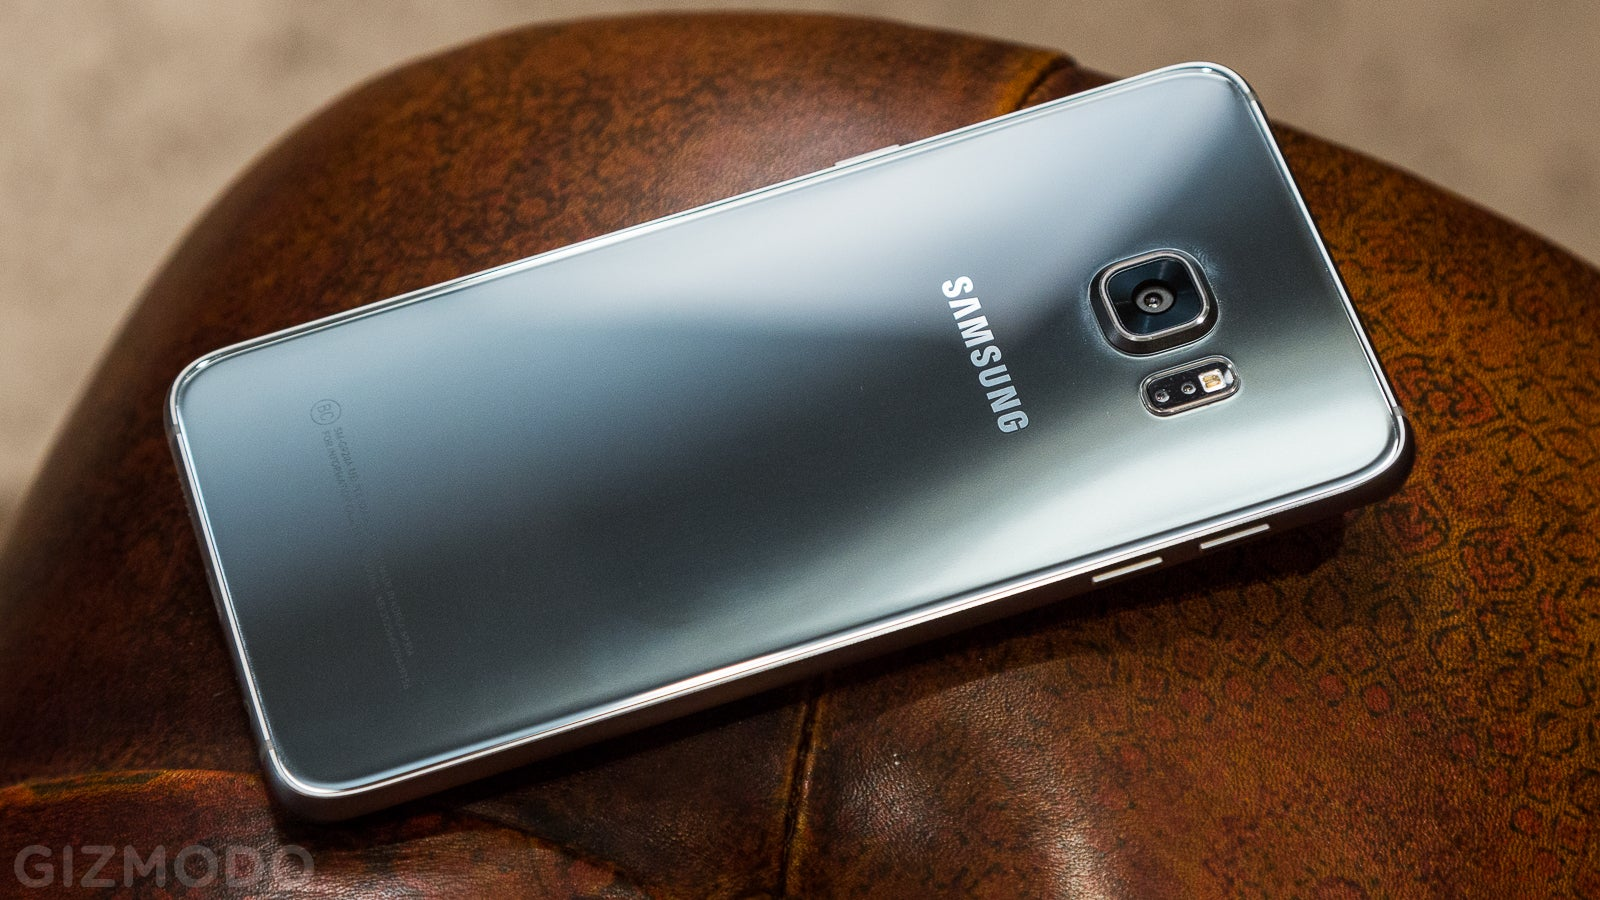 The Galaxy S6 Edge Plus: Yep, It Certainly Is Bigger